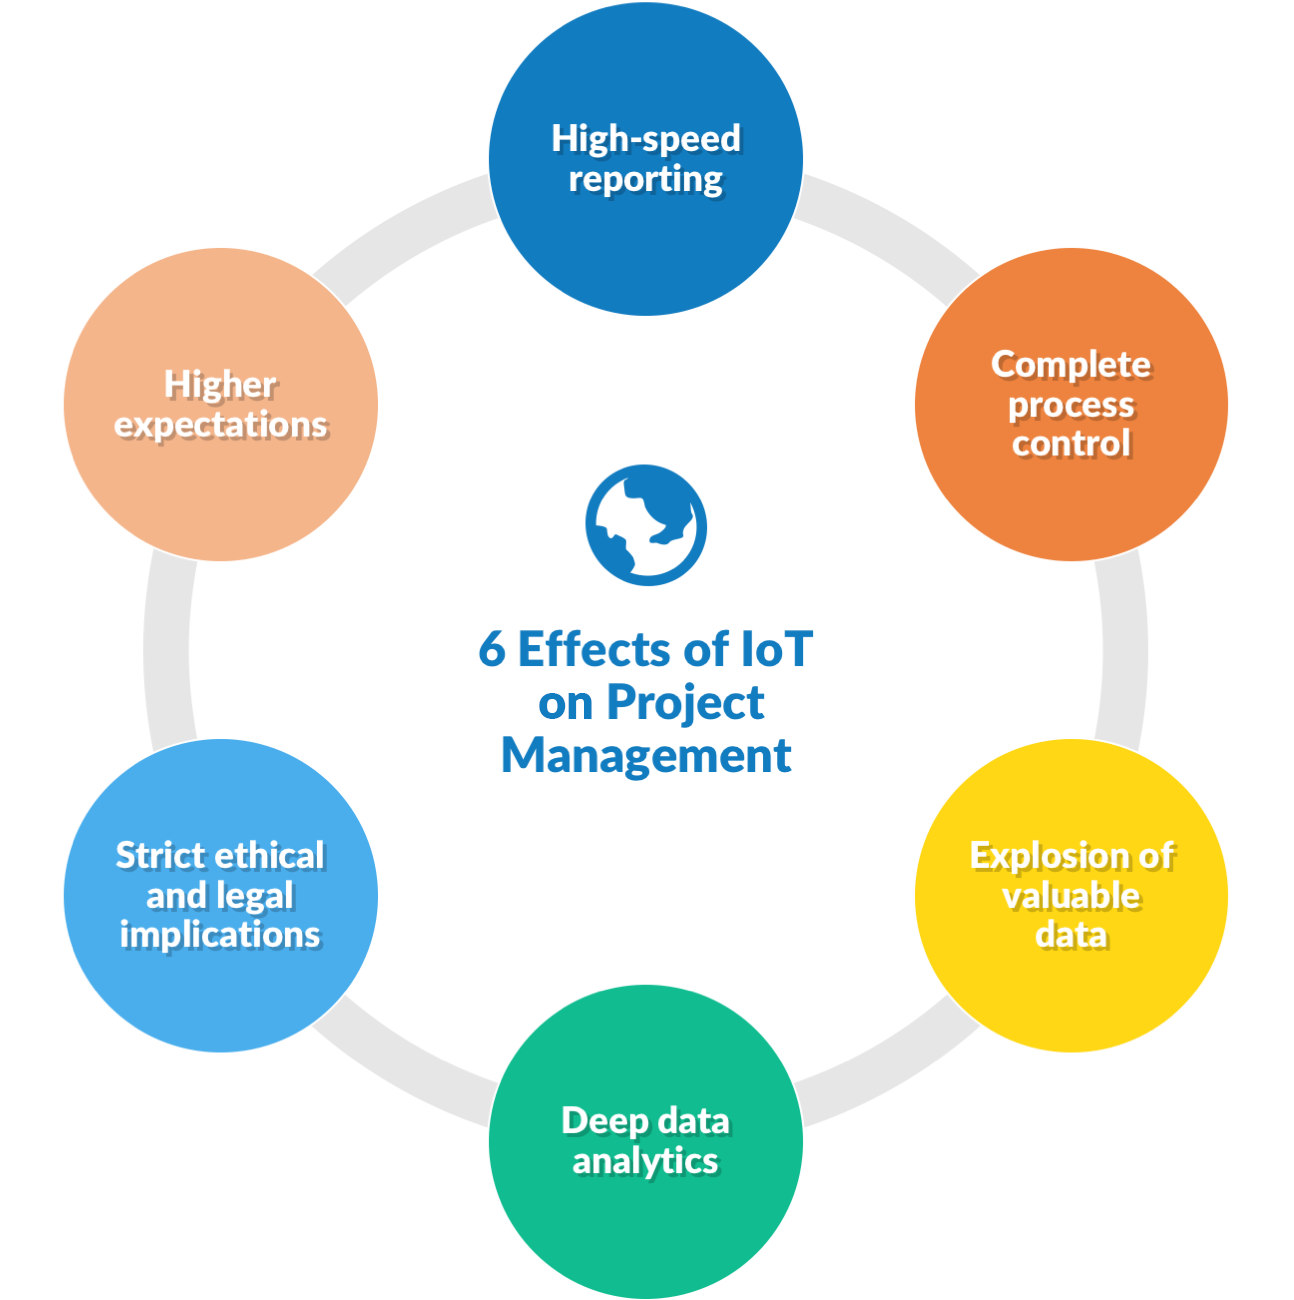 6 effects of IoT on project management